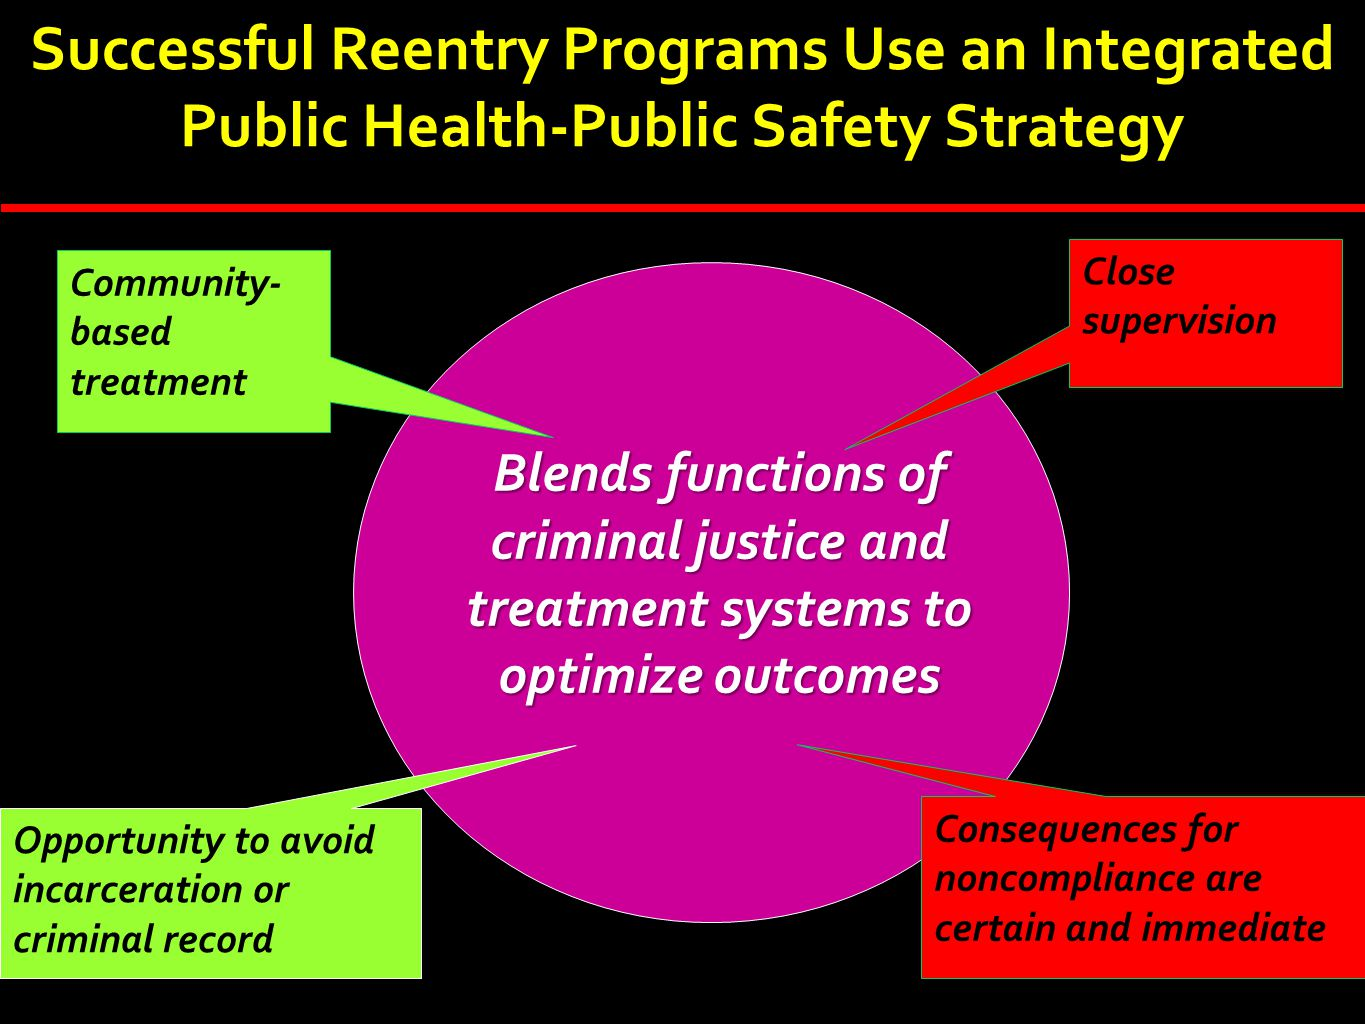 Successful Reentry Programs Use an Integrated Public Health-Public Safety Strategy